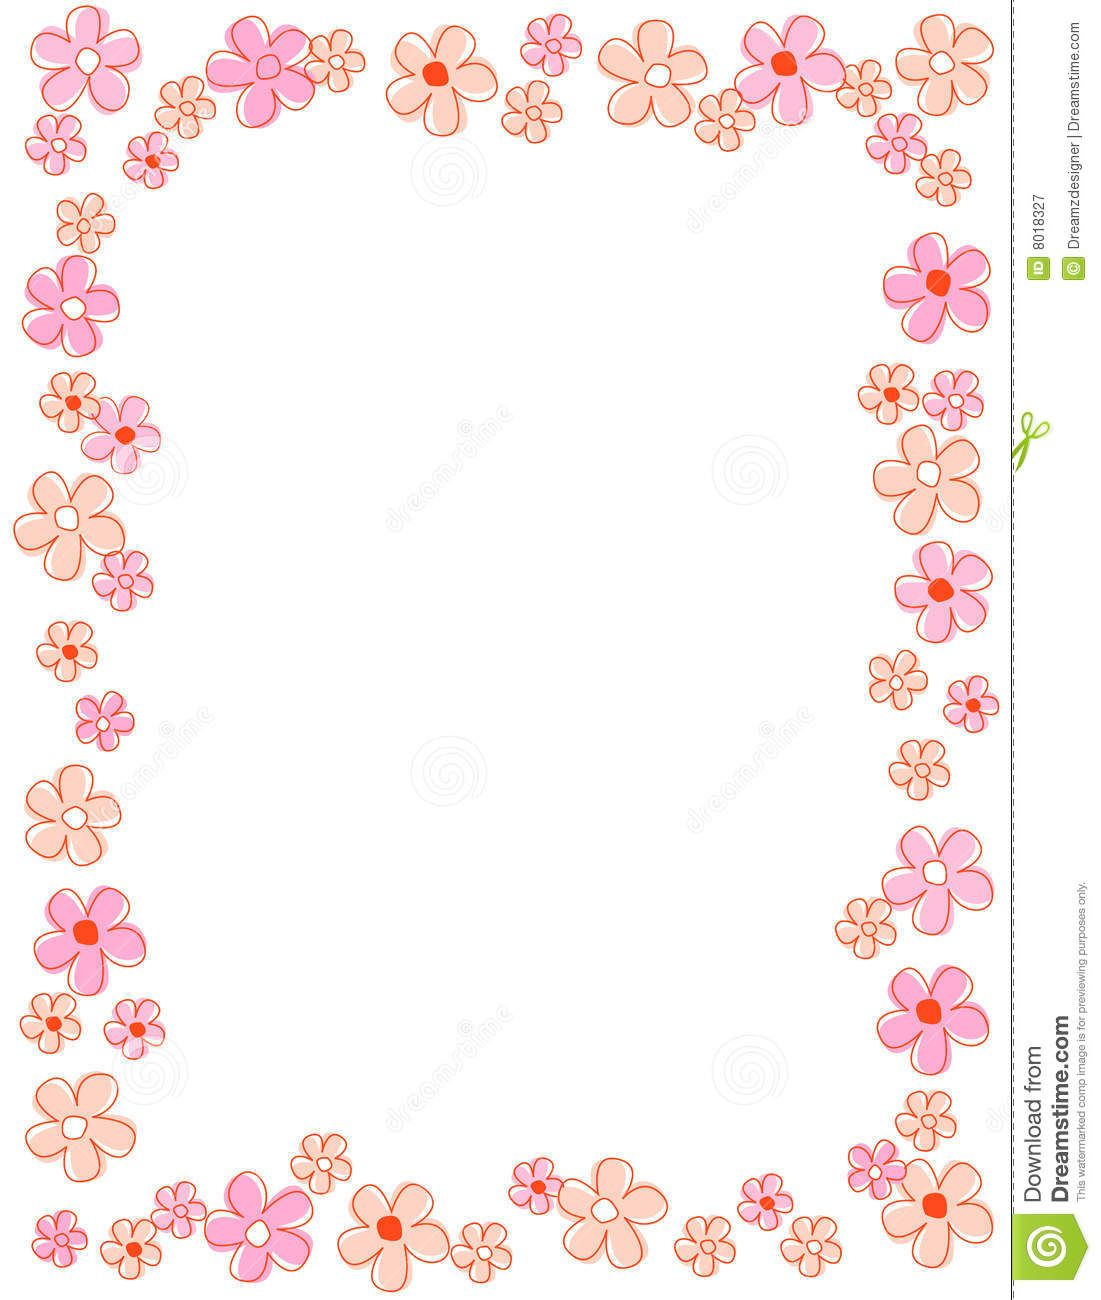 Pink floral frame clipart jpg black and white download Pin by Alanoud on Frames 〰   Page borders design, Flower ... jpg black and white download